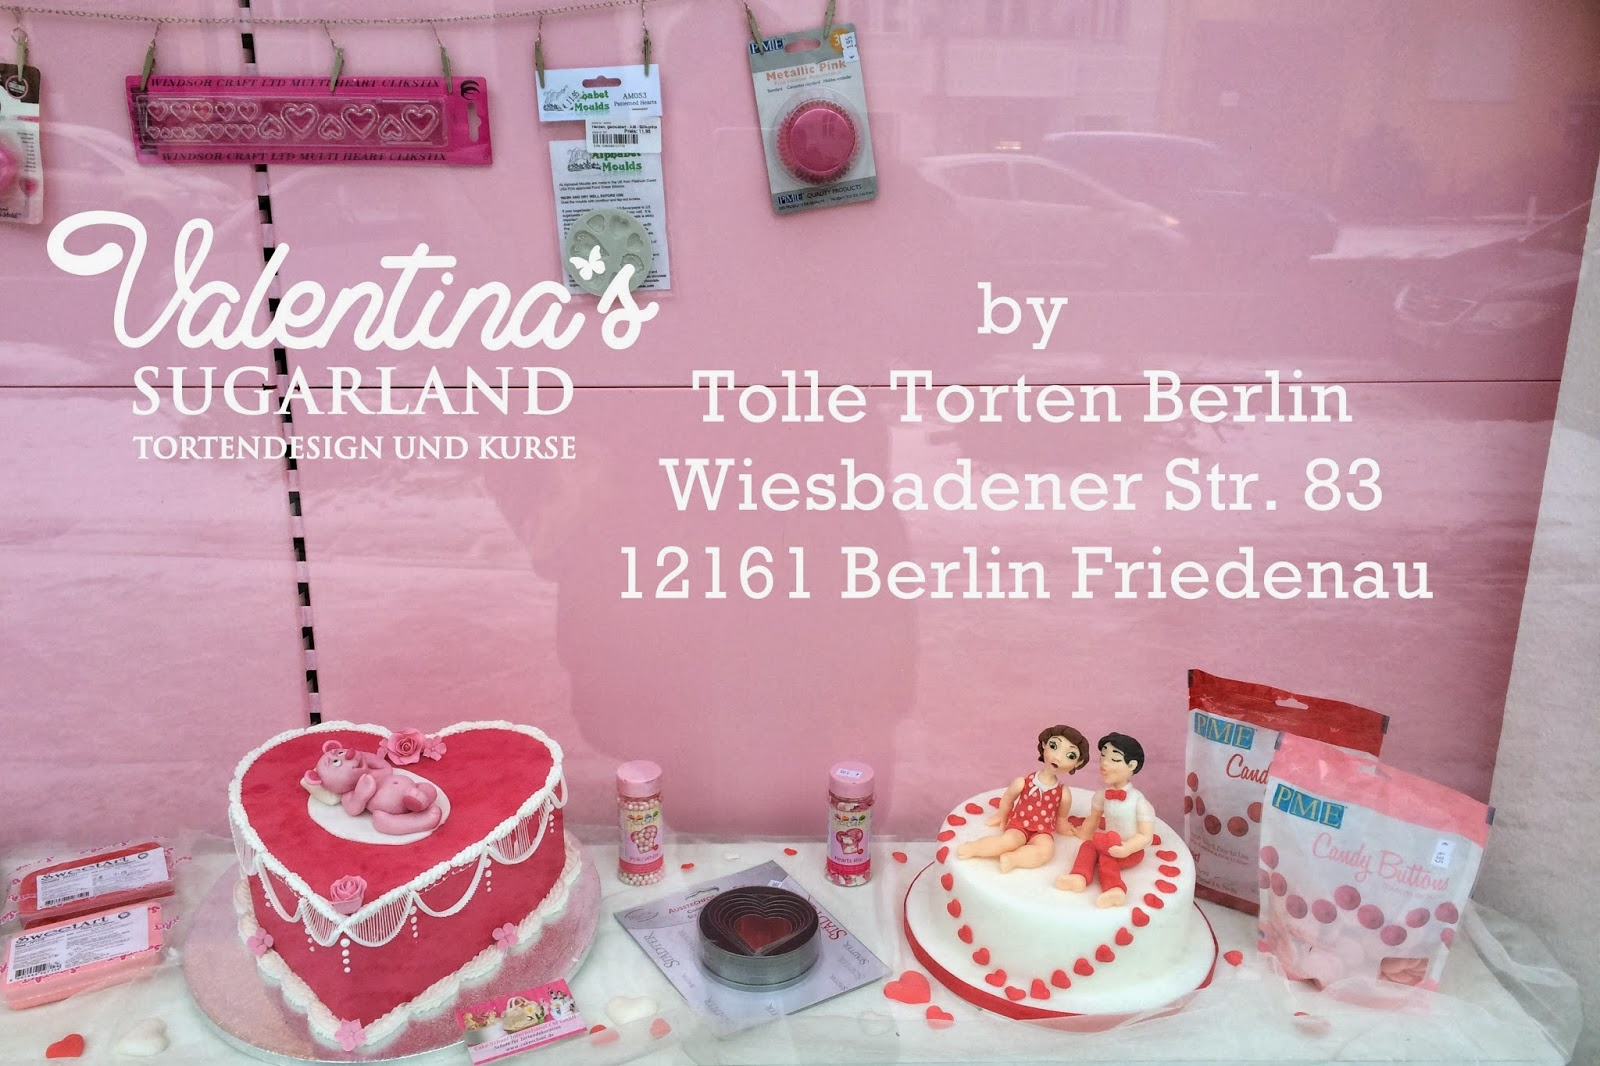 Tolle torten laden berlin